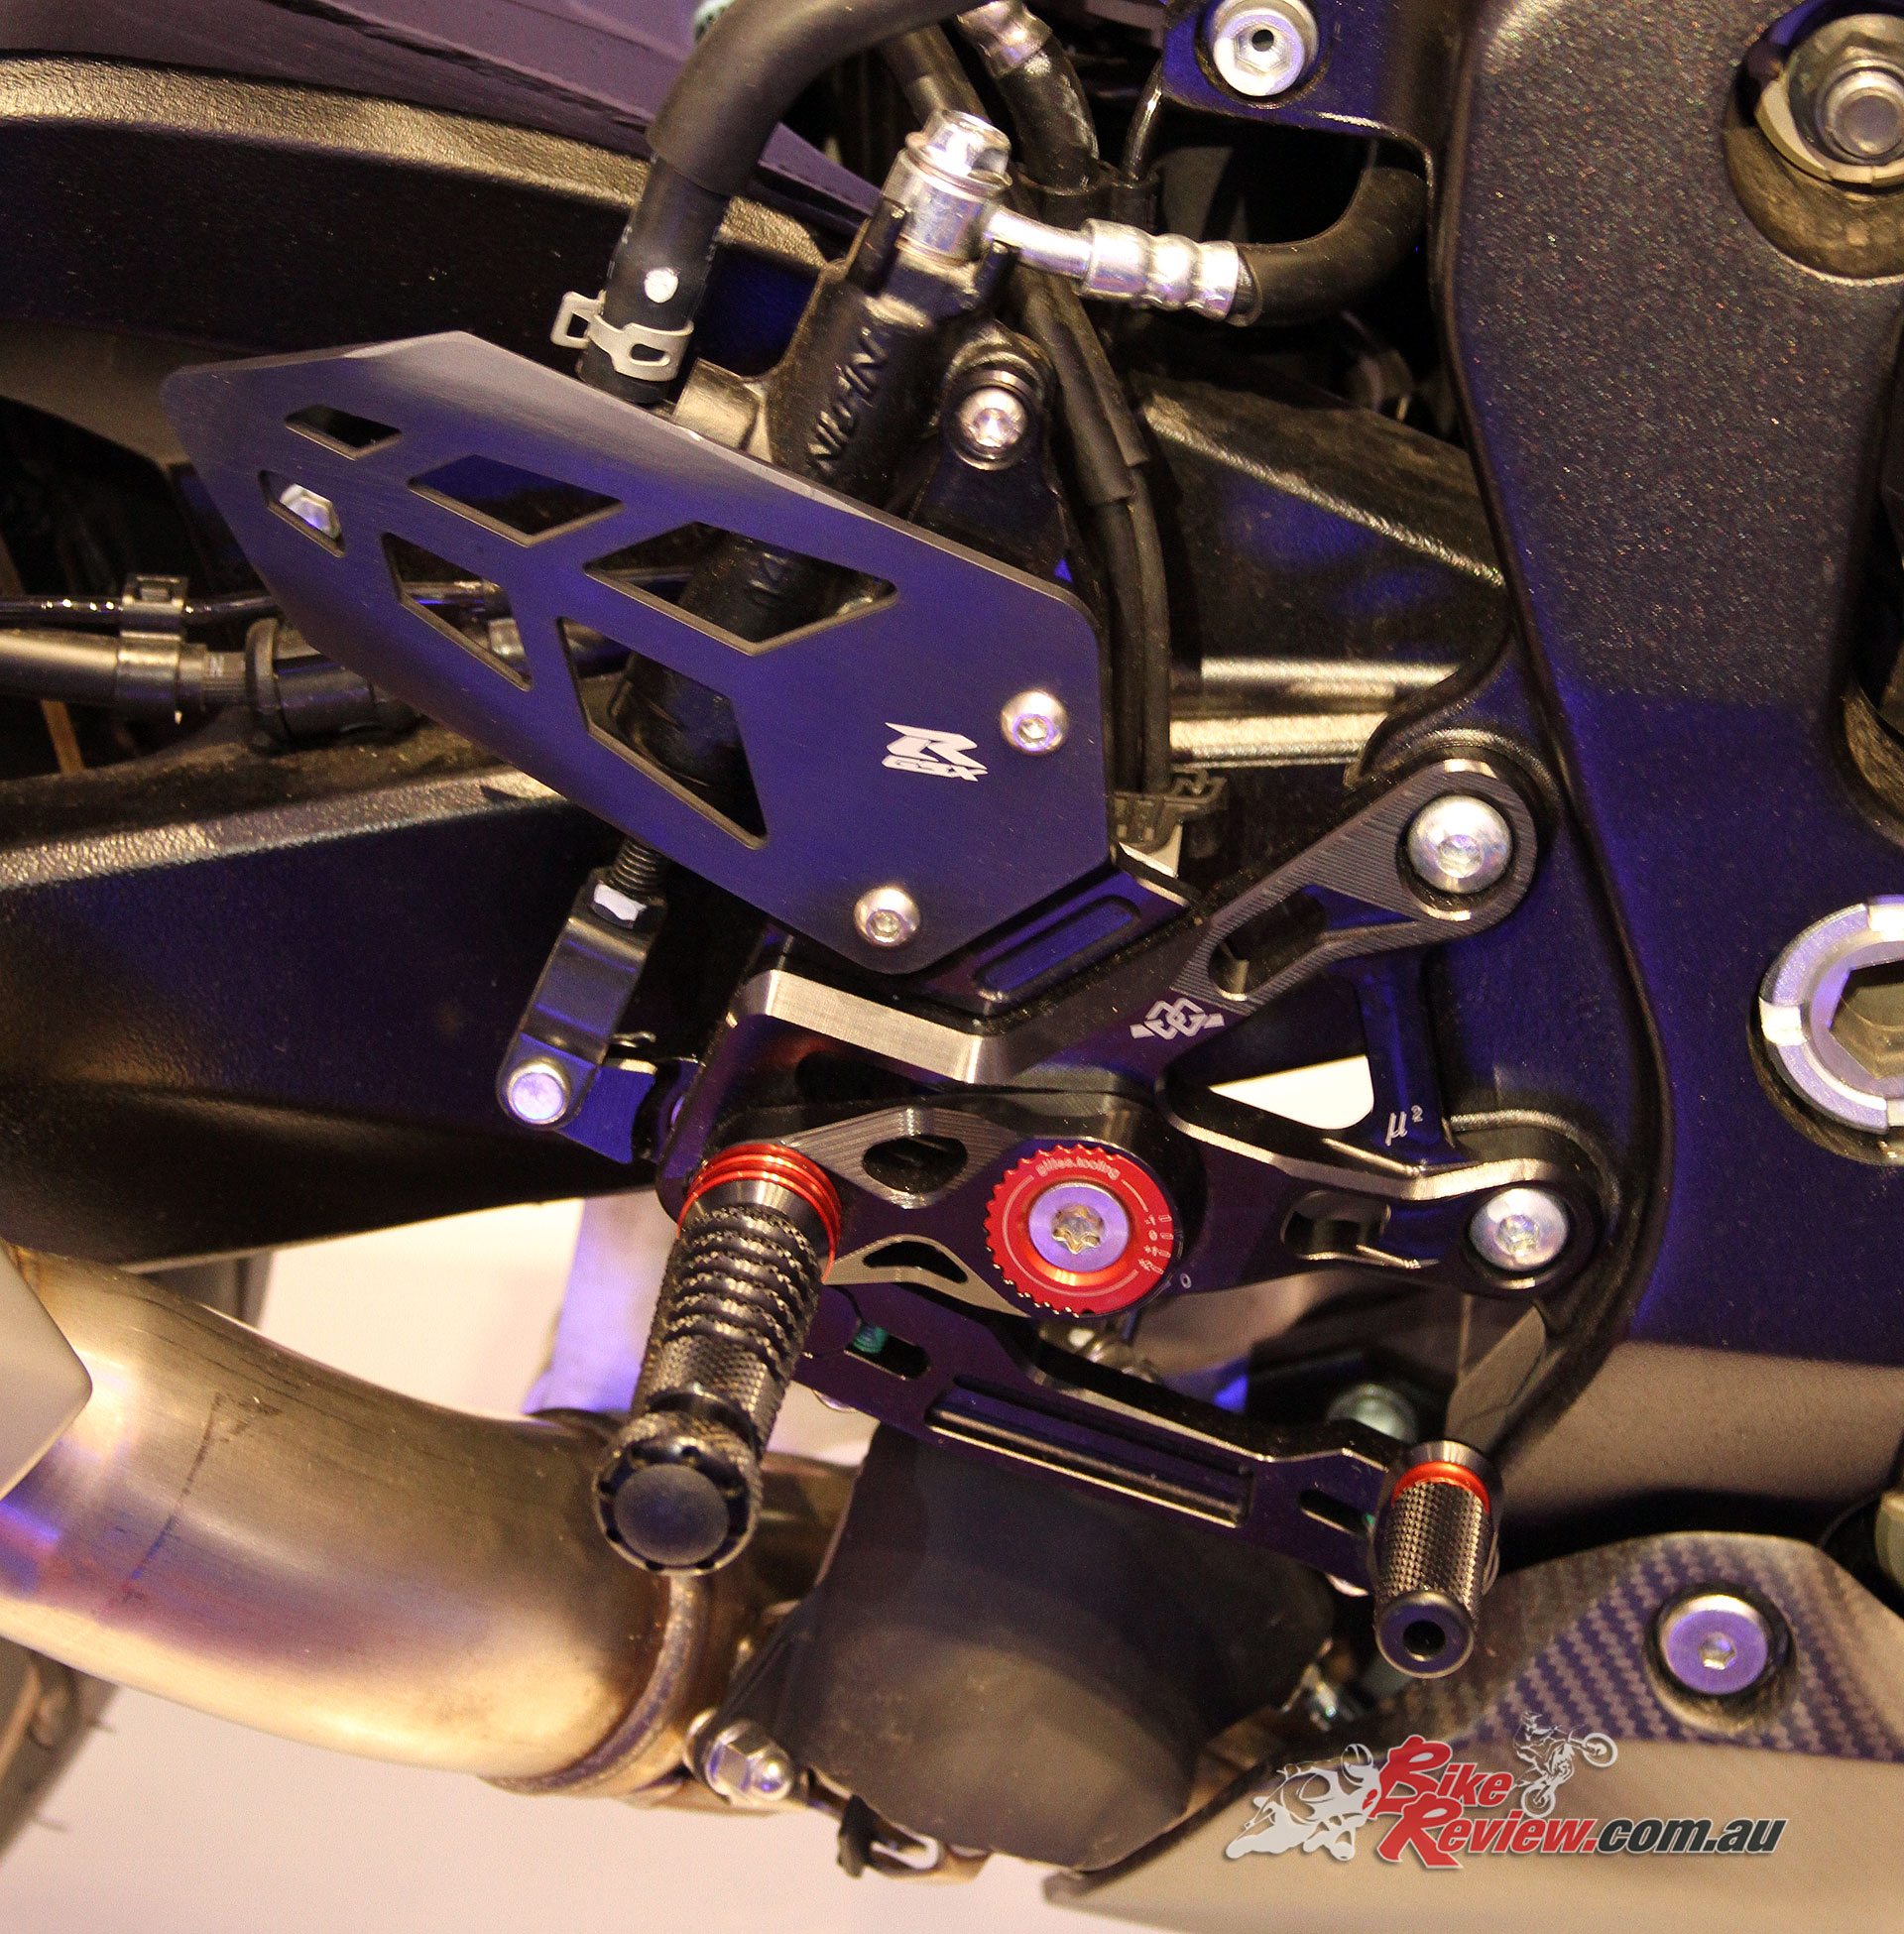 There was a whole range of GSX-R1000 accessories also on display in a kitted out machine, here are the billet rearsets